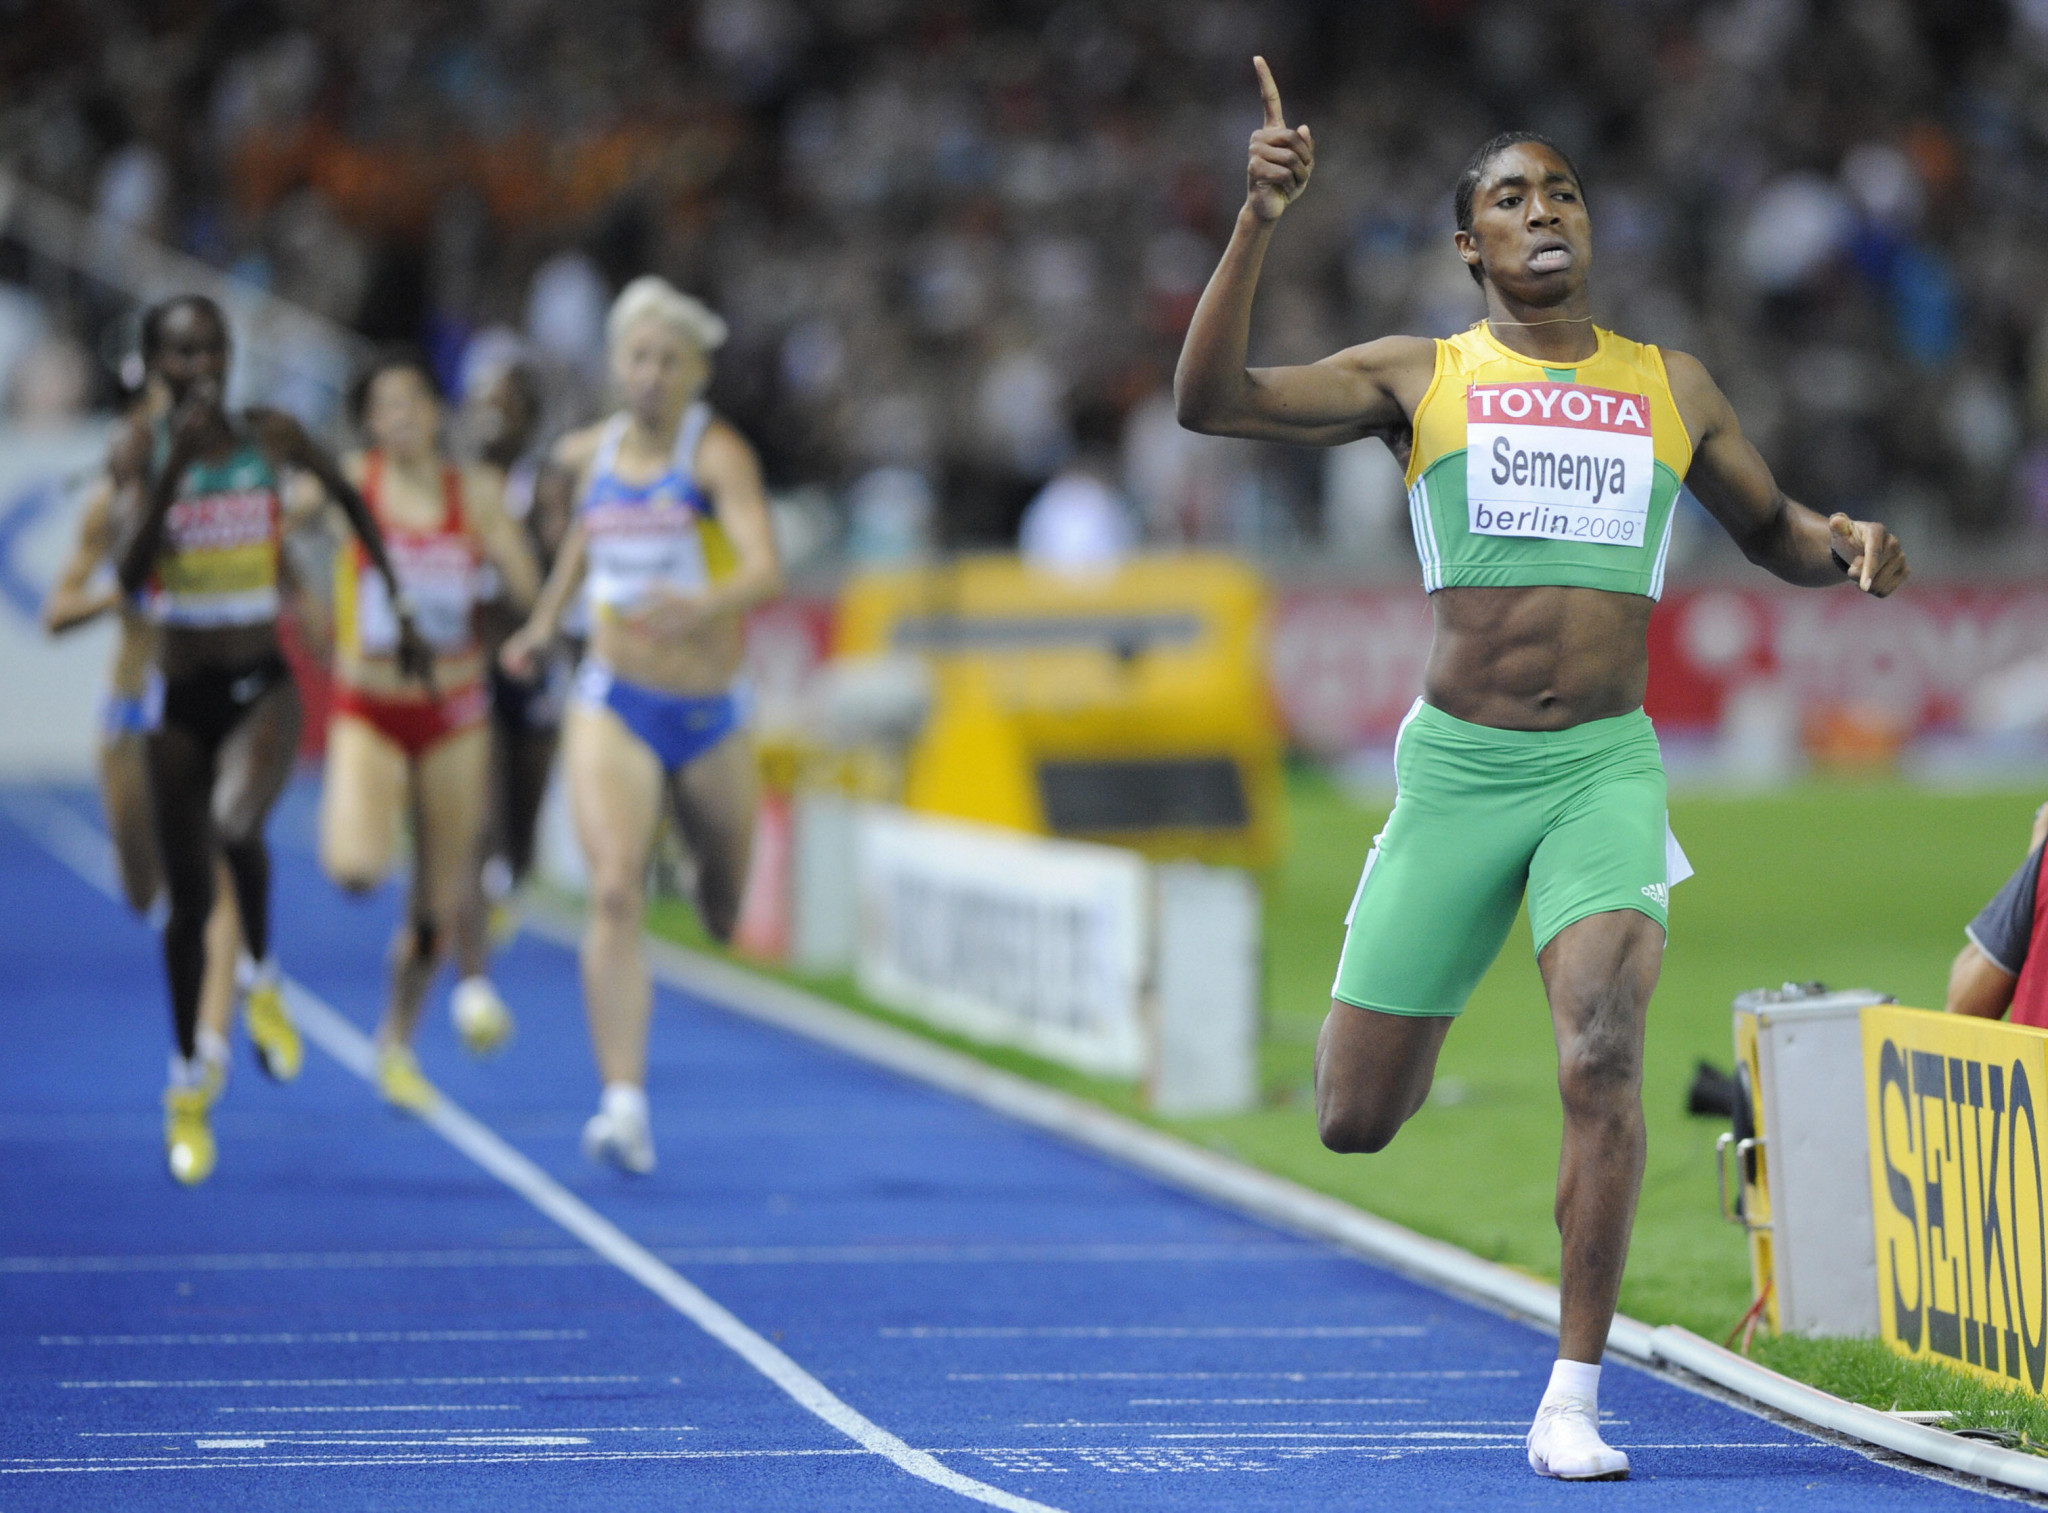 The ability of South Africa's Caster Semenya first came under scrutiny in 2009, when she won the IAAF World Championship 800m title with ease, aged just 18, leading to doubts over her gender ©Getty Images